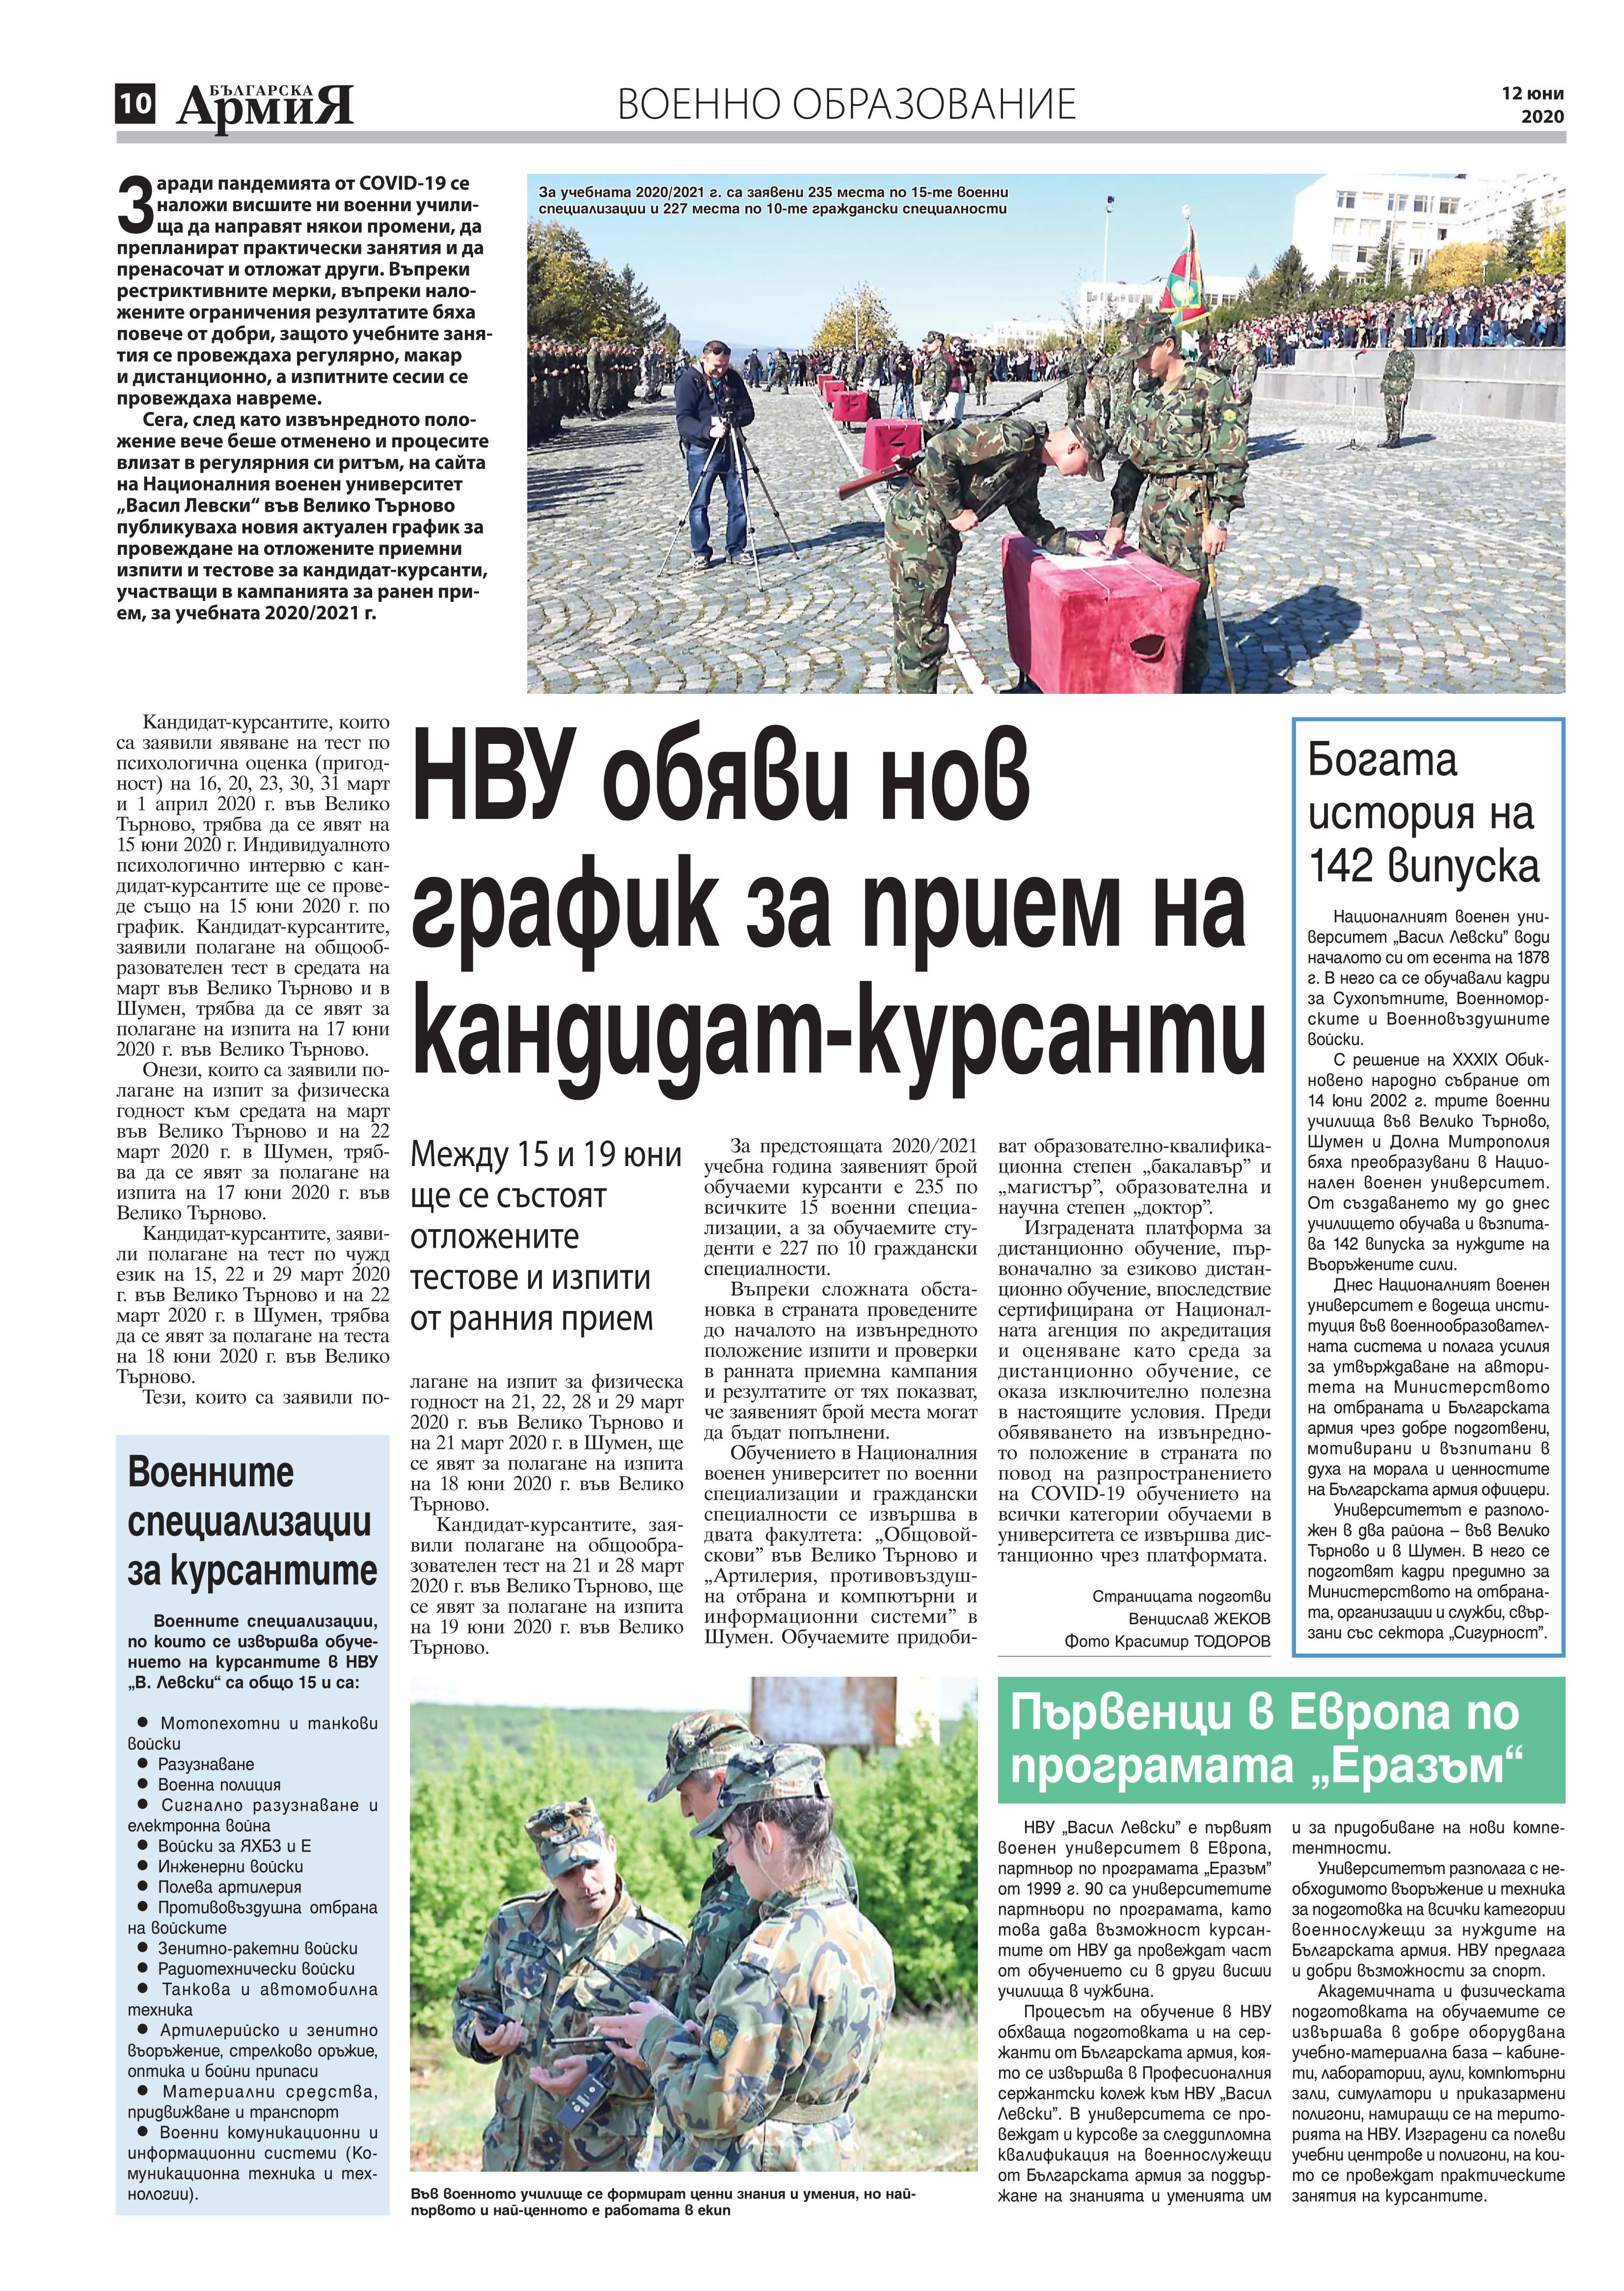 https://www.armymedia.bg/wp-content/uploads/2015/06/10.page1_-143.jpg